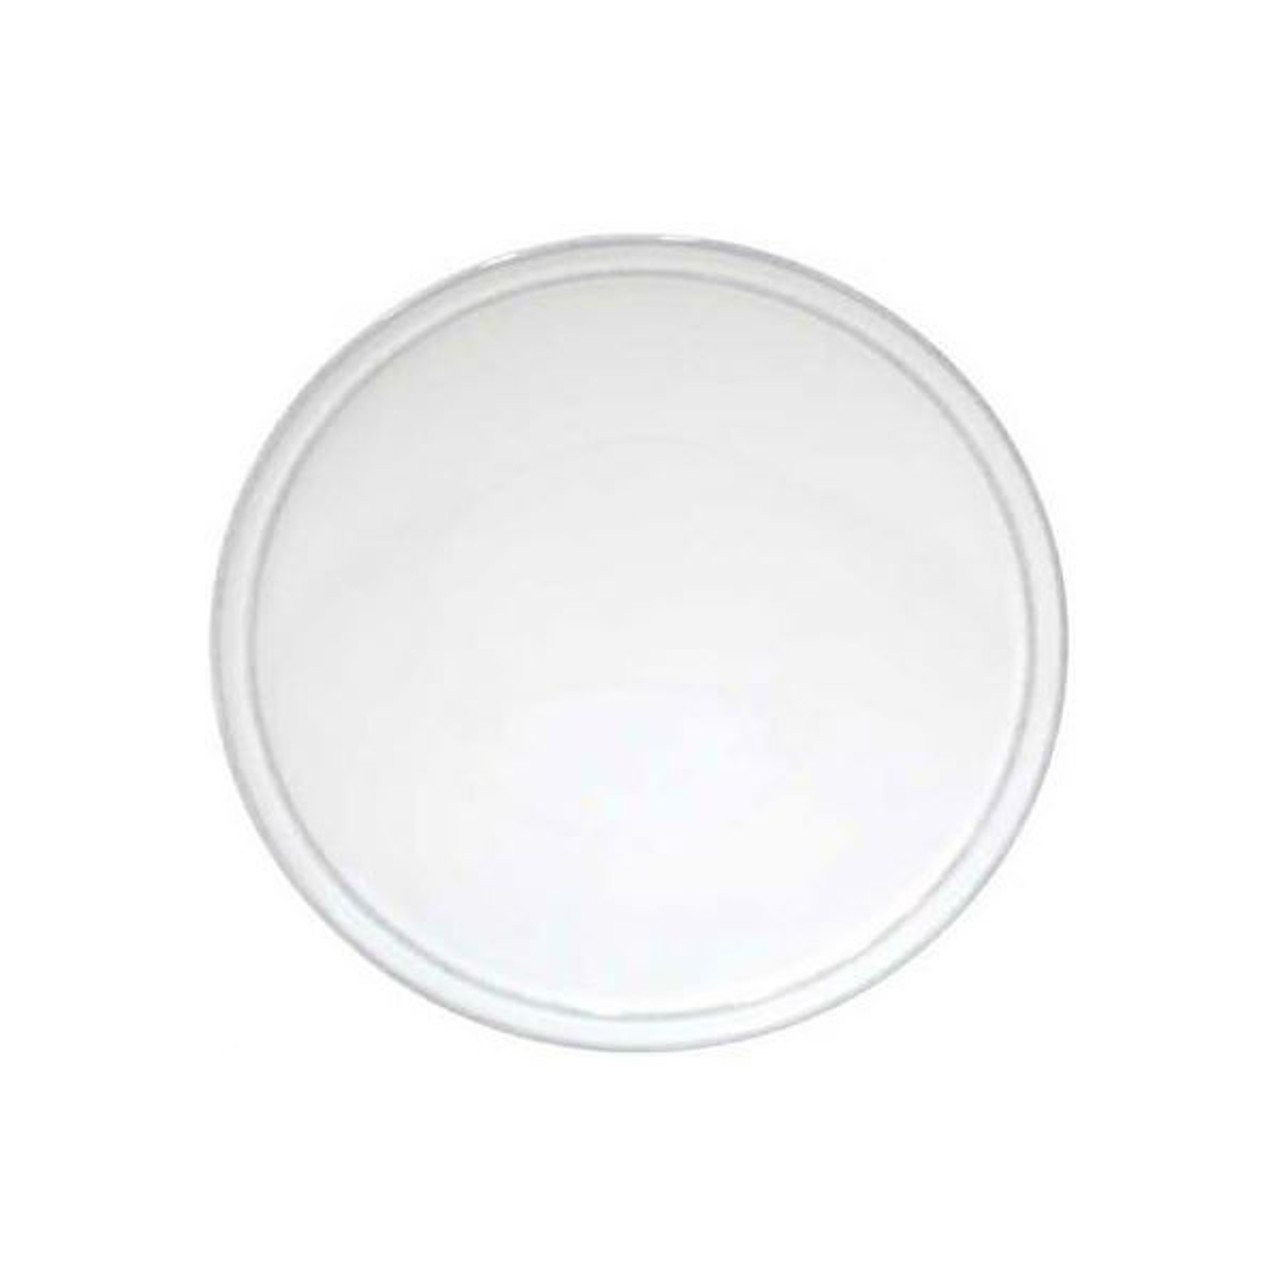 FRISO BREAD AND BUTTER PLATE 16cm - WHITE